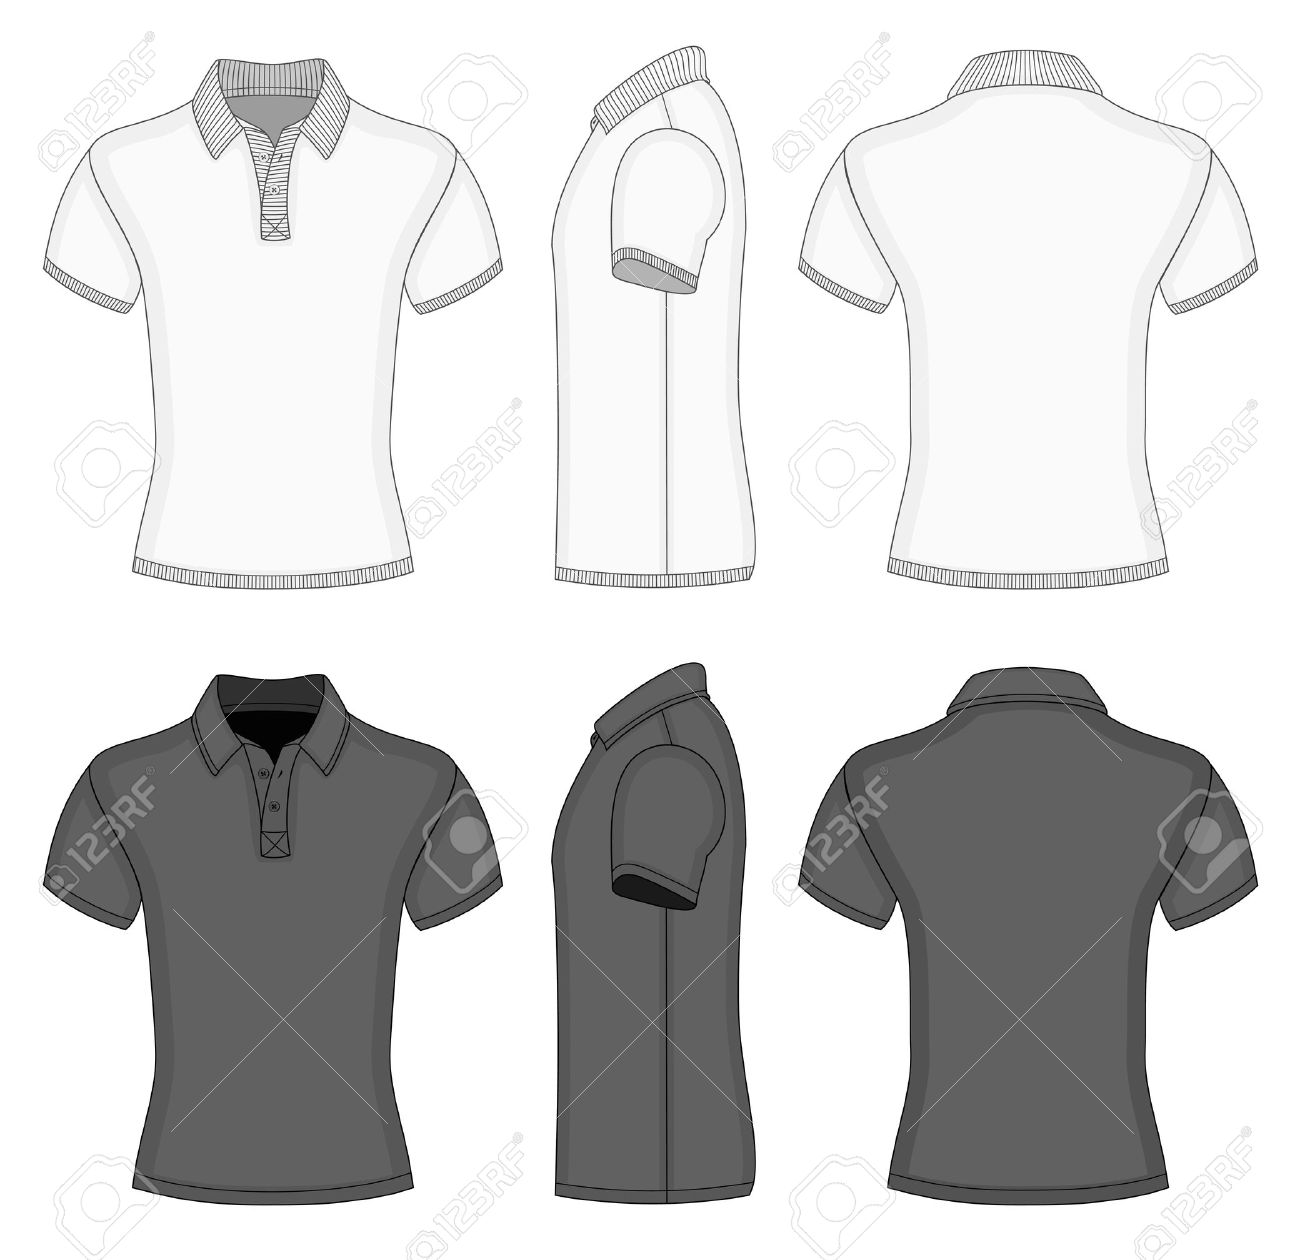 Men\'s Polo Shirt And T-shirt Design Templates Royalty Free Cliparts ...